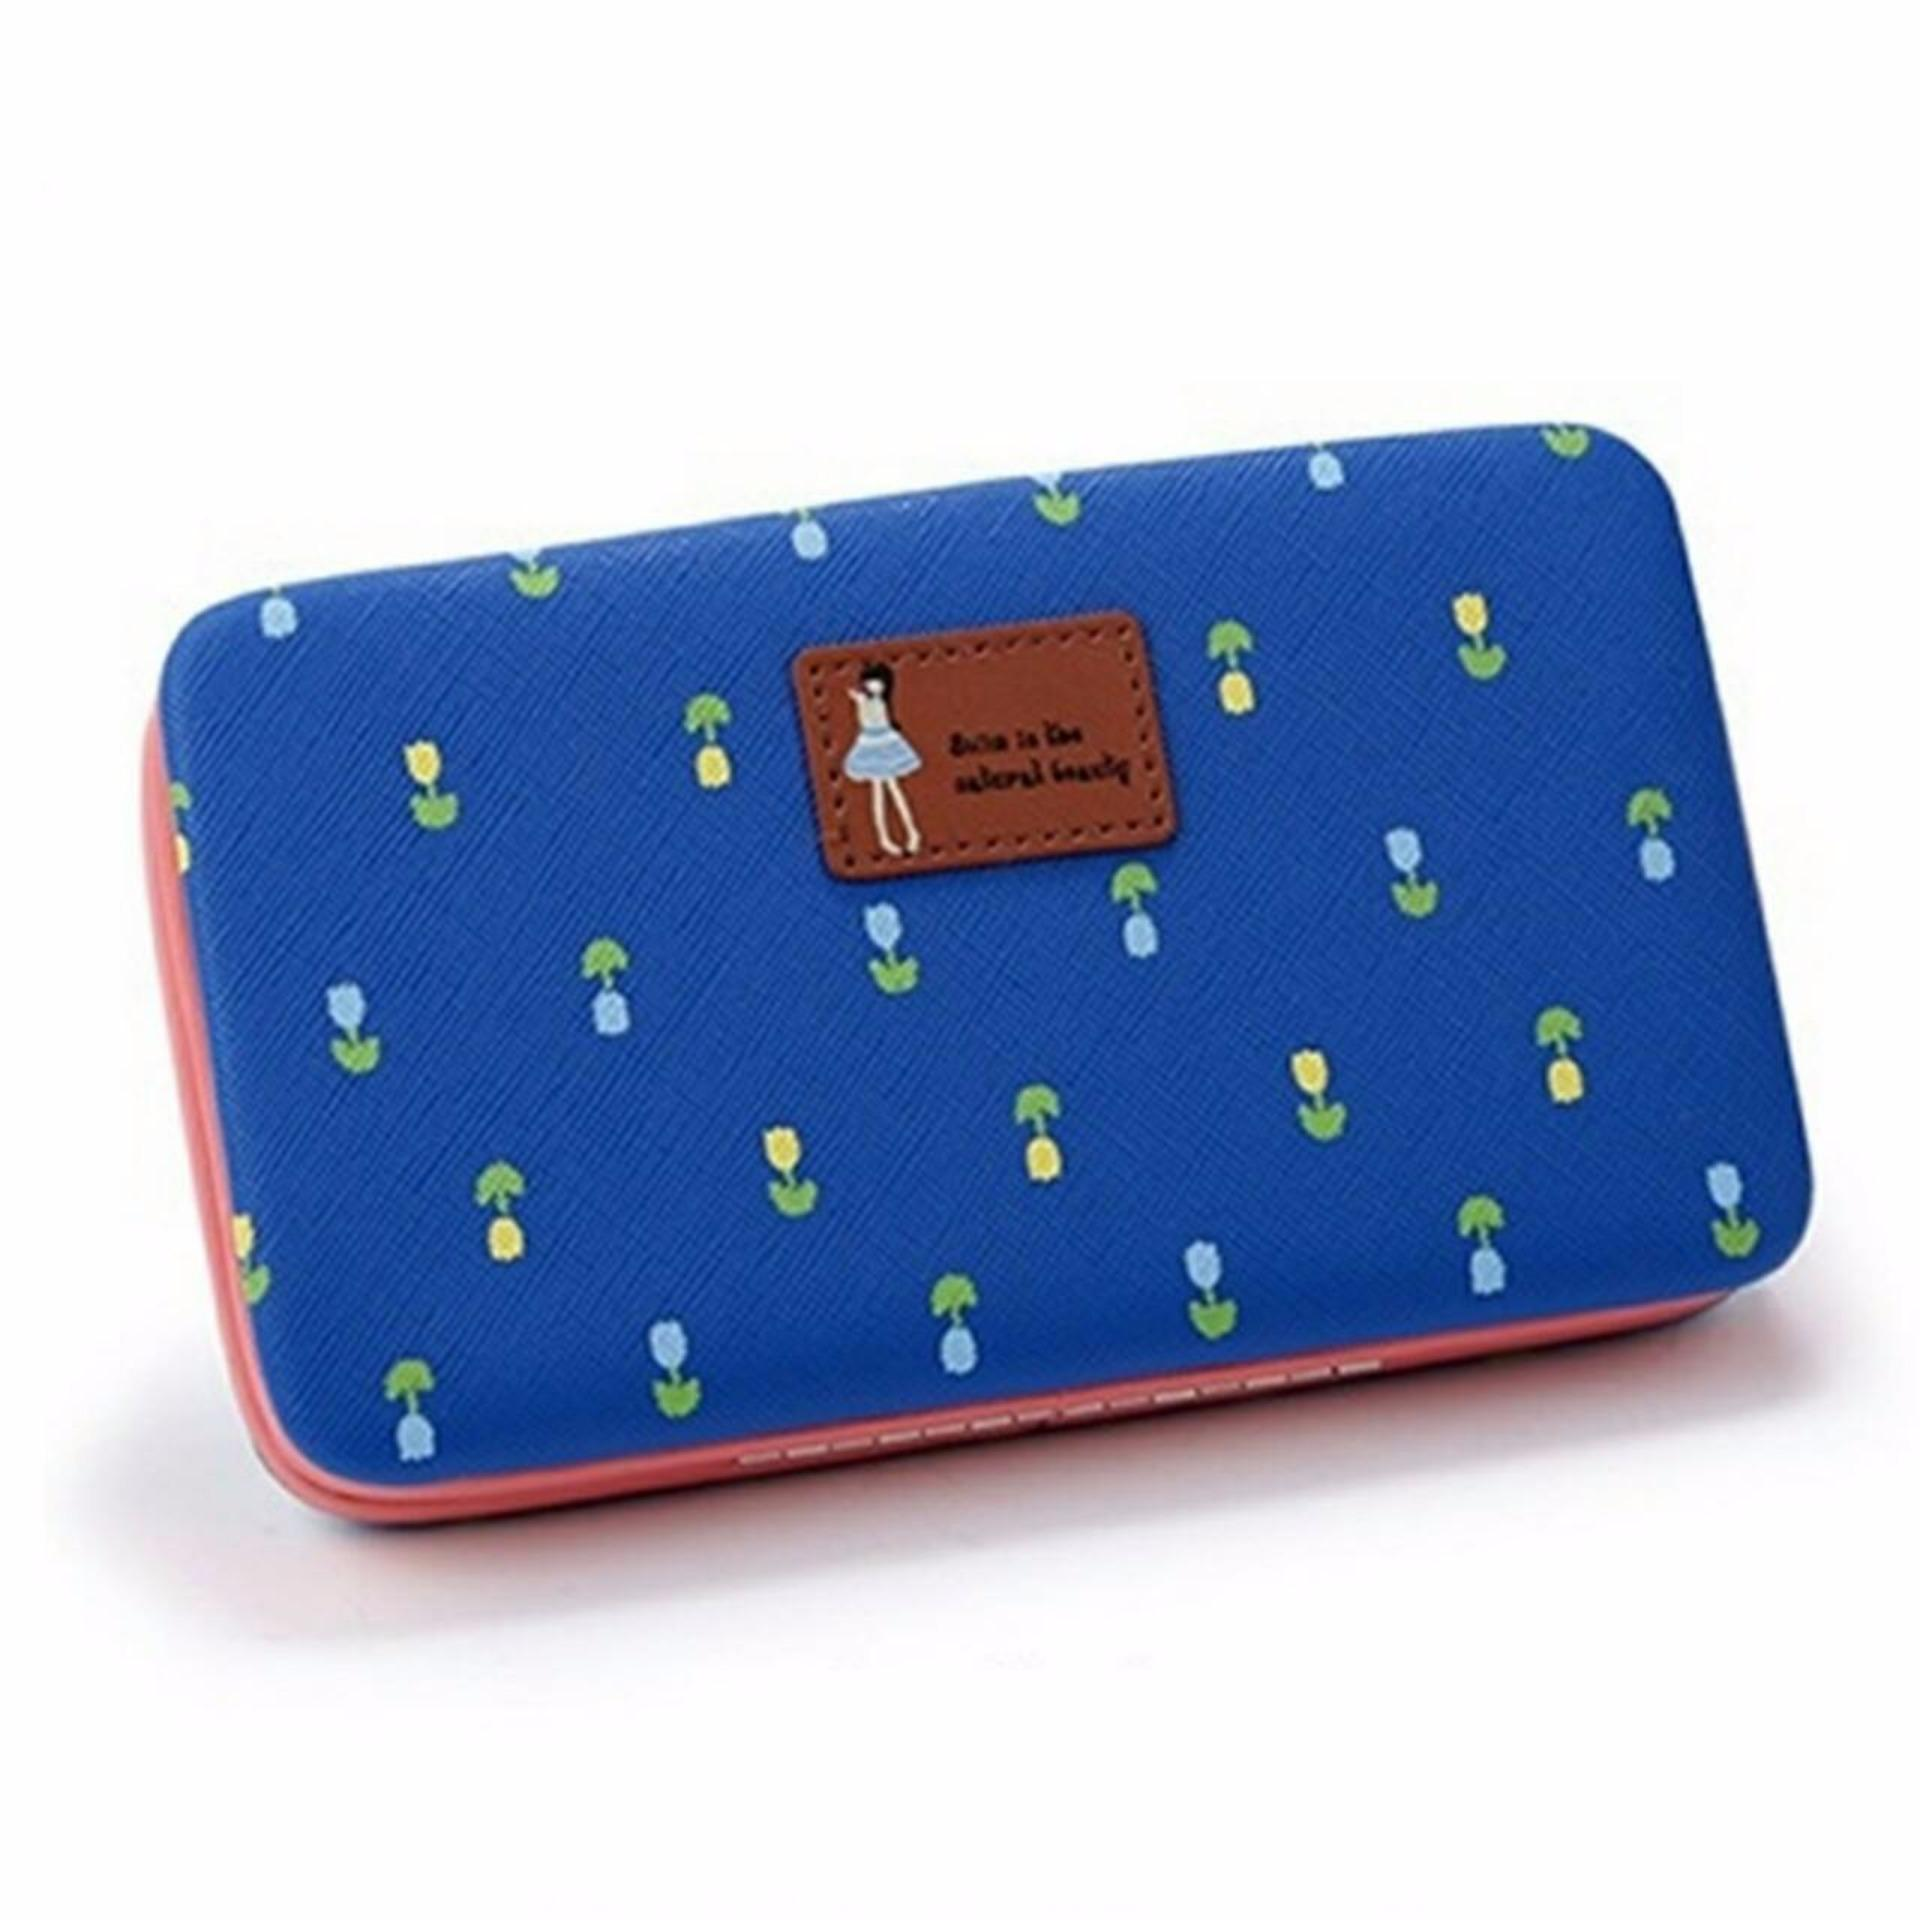 Harga Jims Honey Best Seller Wallet Import Lady Wallet Navy Termurah